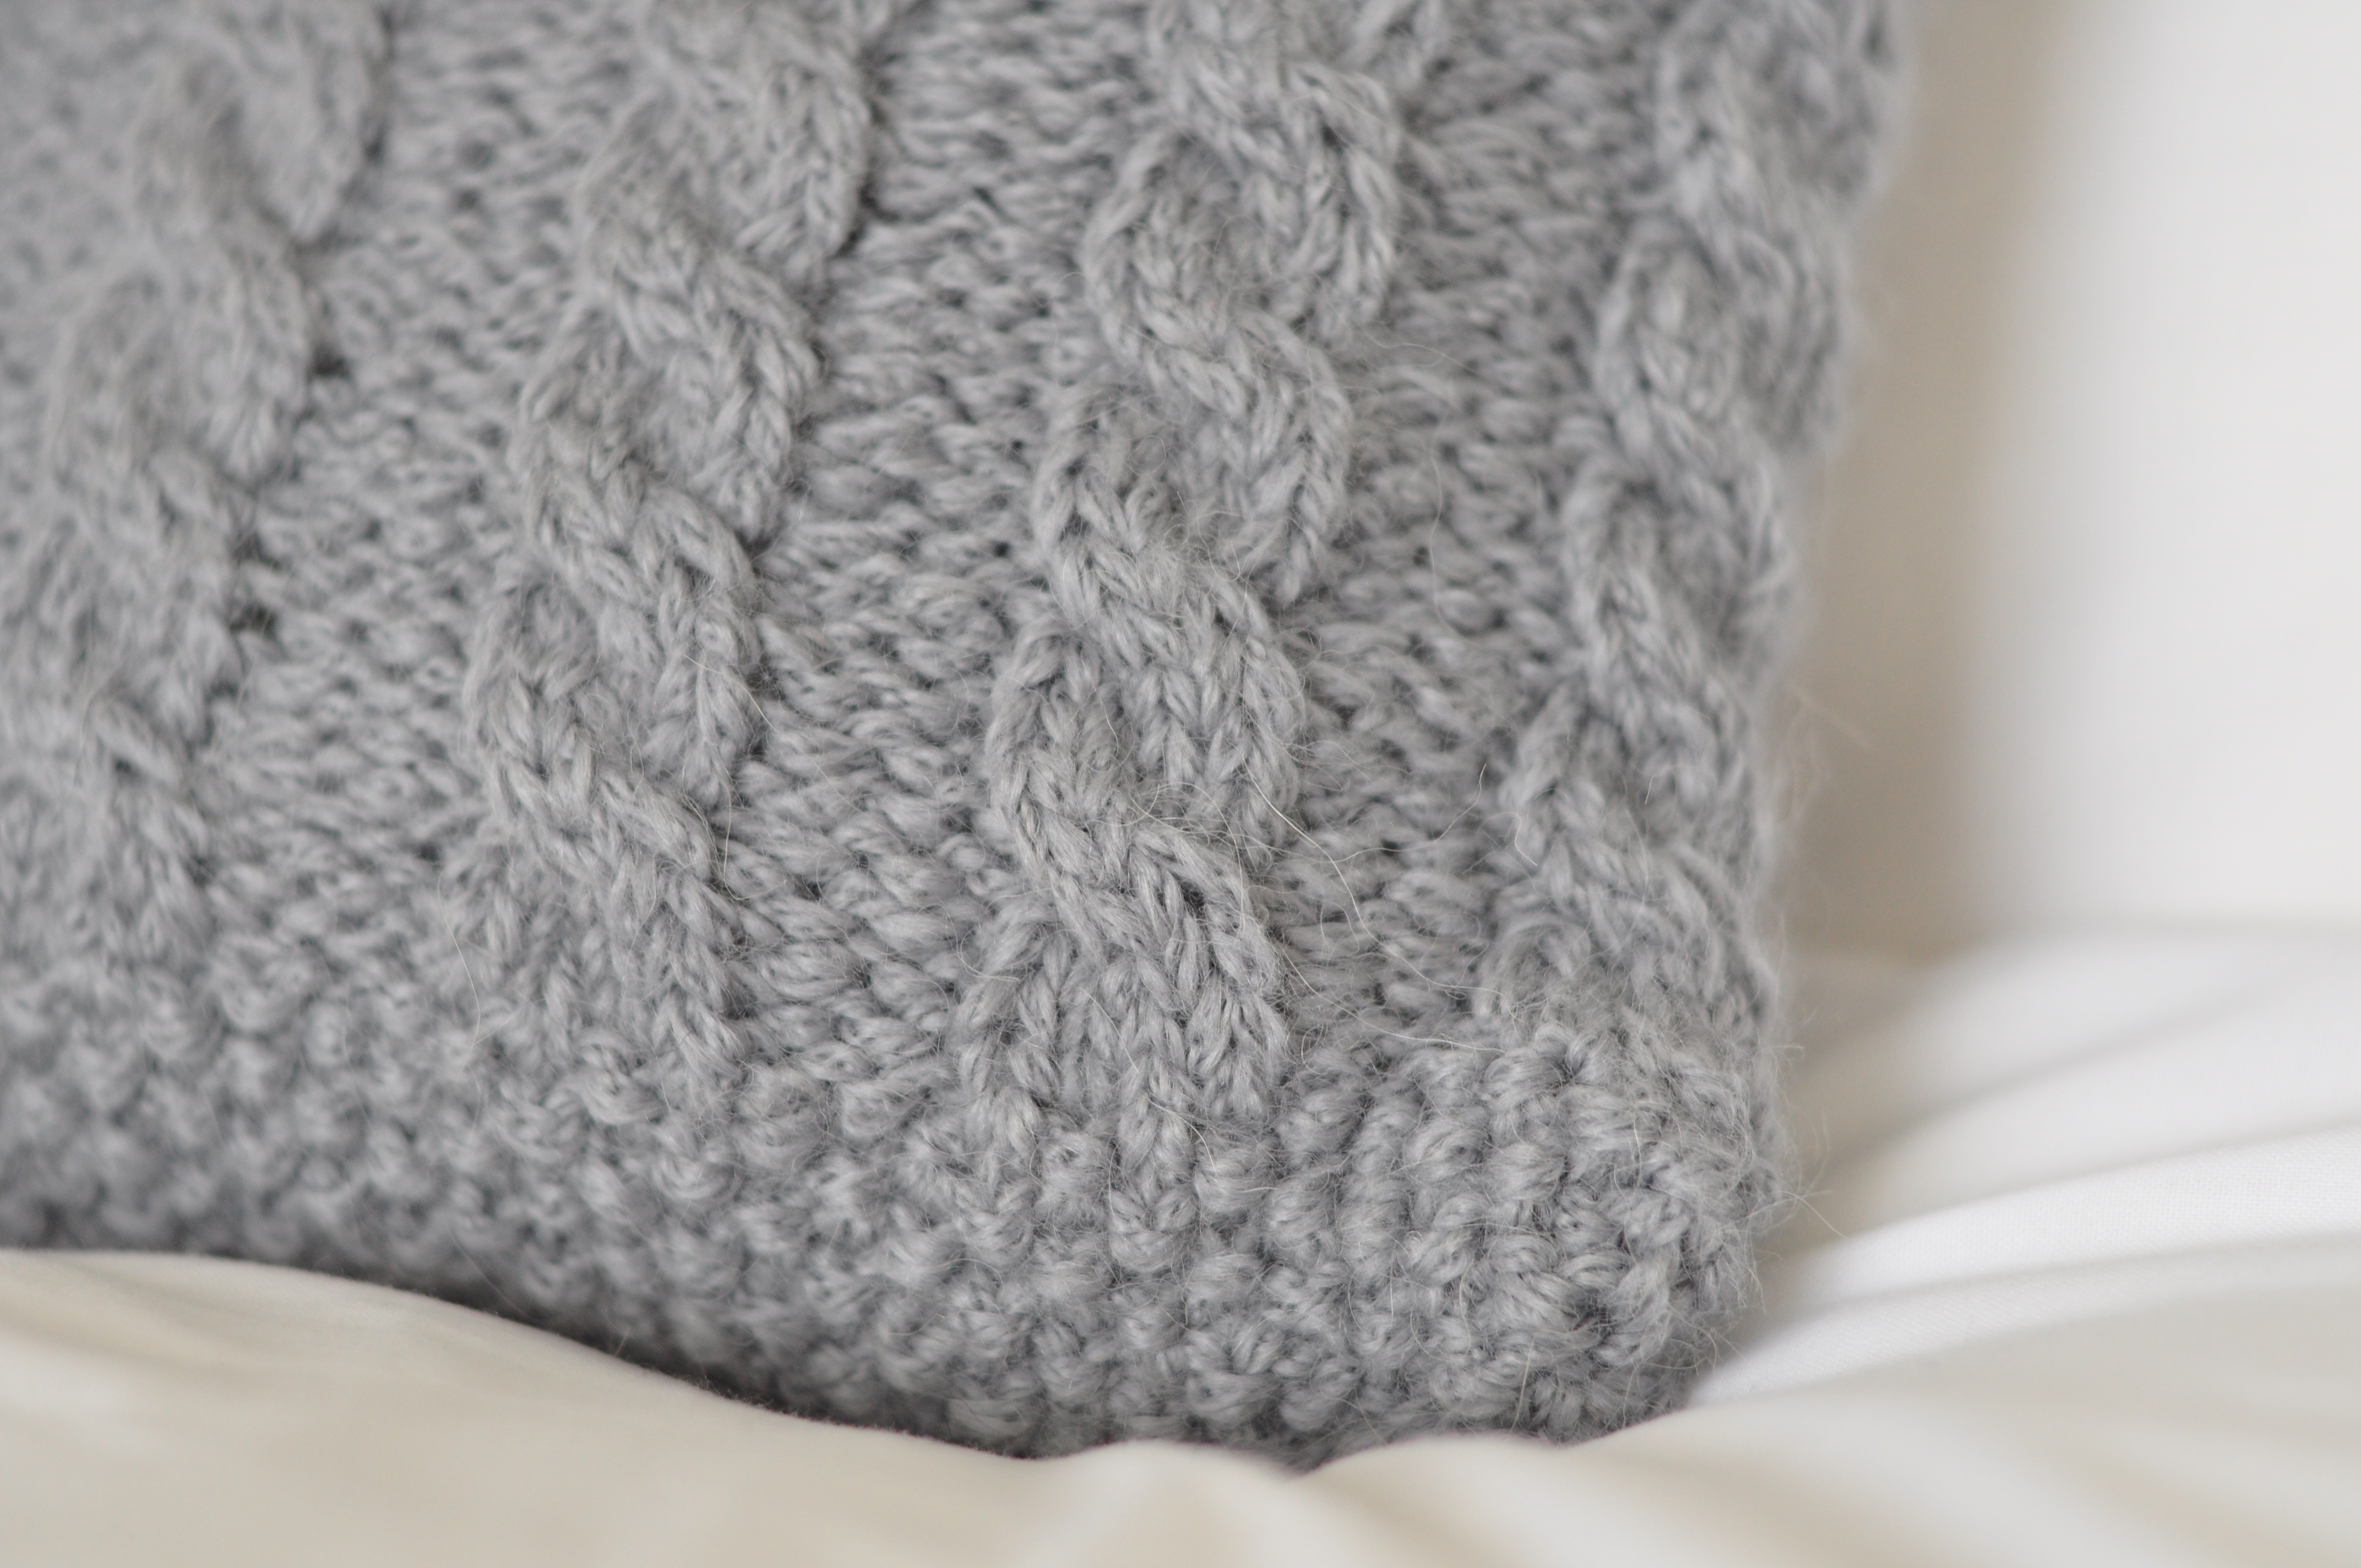 hot water bottle | Crafty Tails